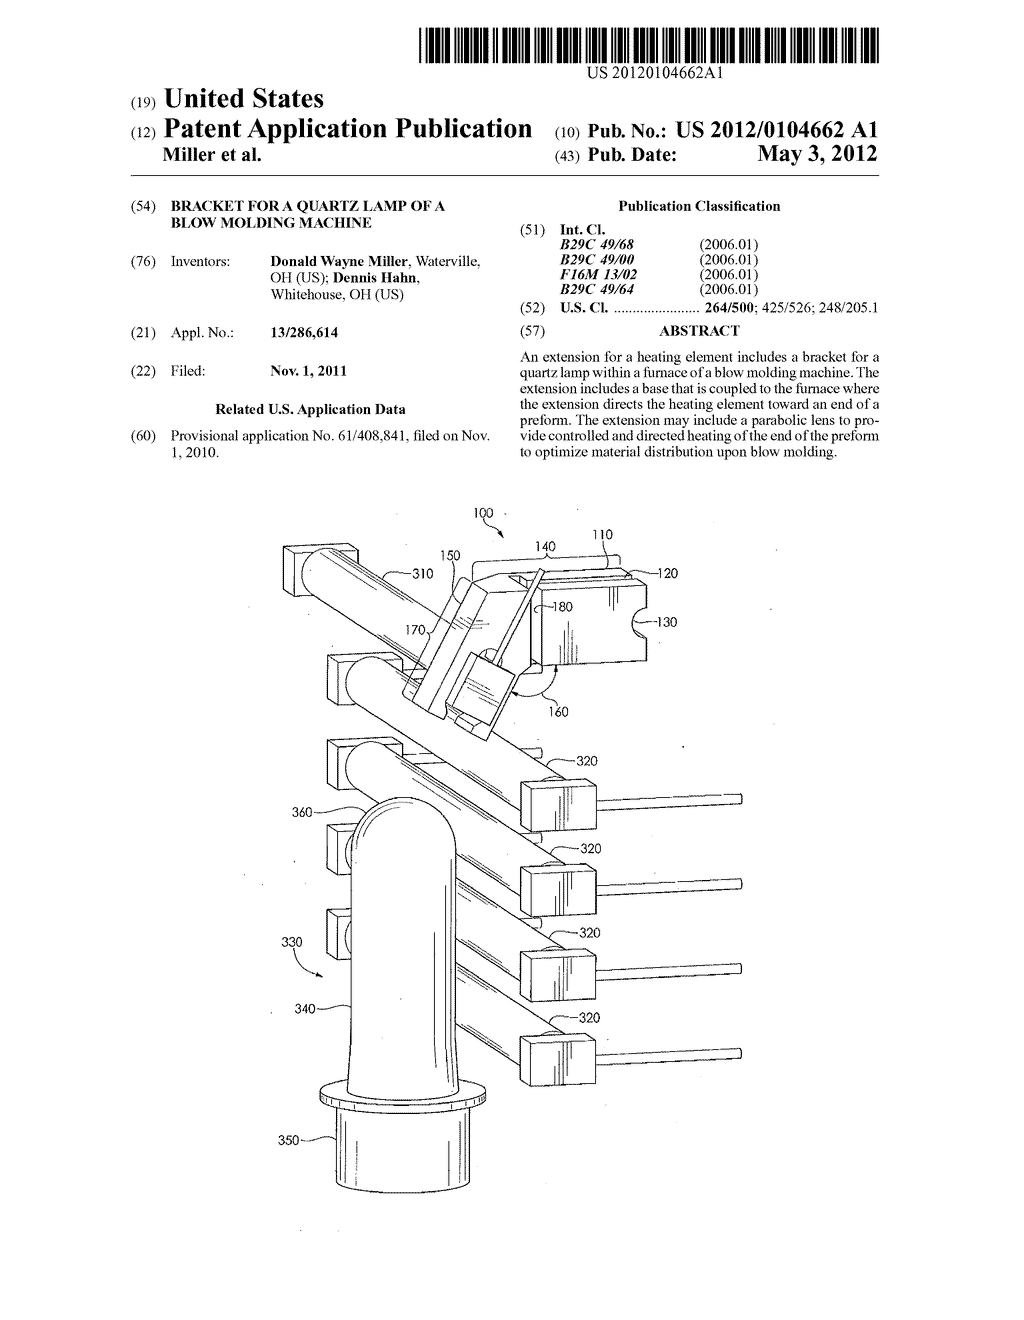 BRACKET FOR A QUARTZ LAMP OF A BLOW MOLDING MACHINE - diagram, schematic, and image 01